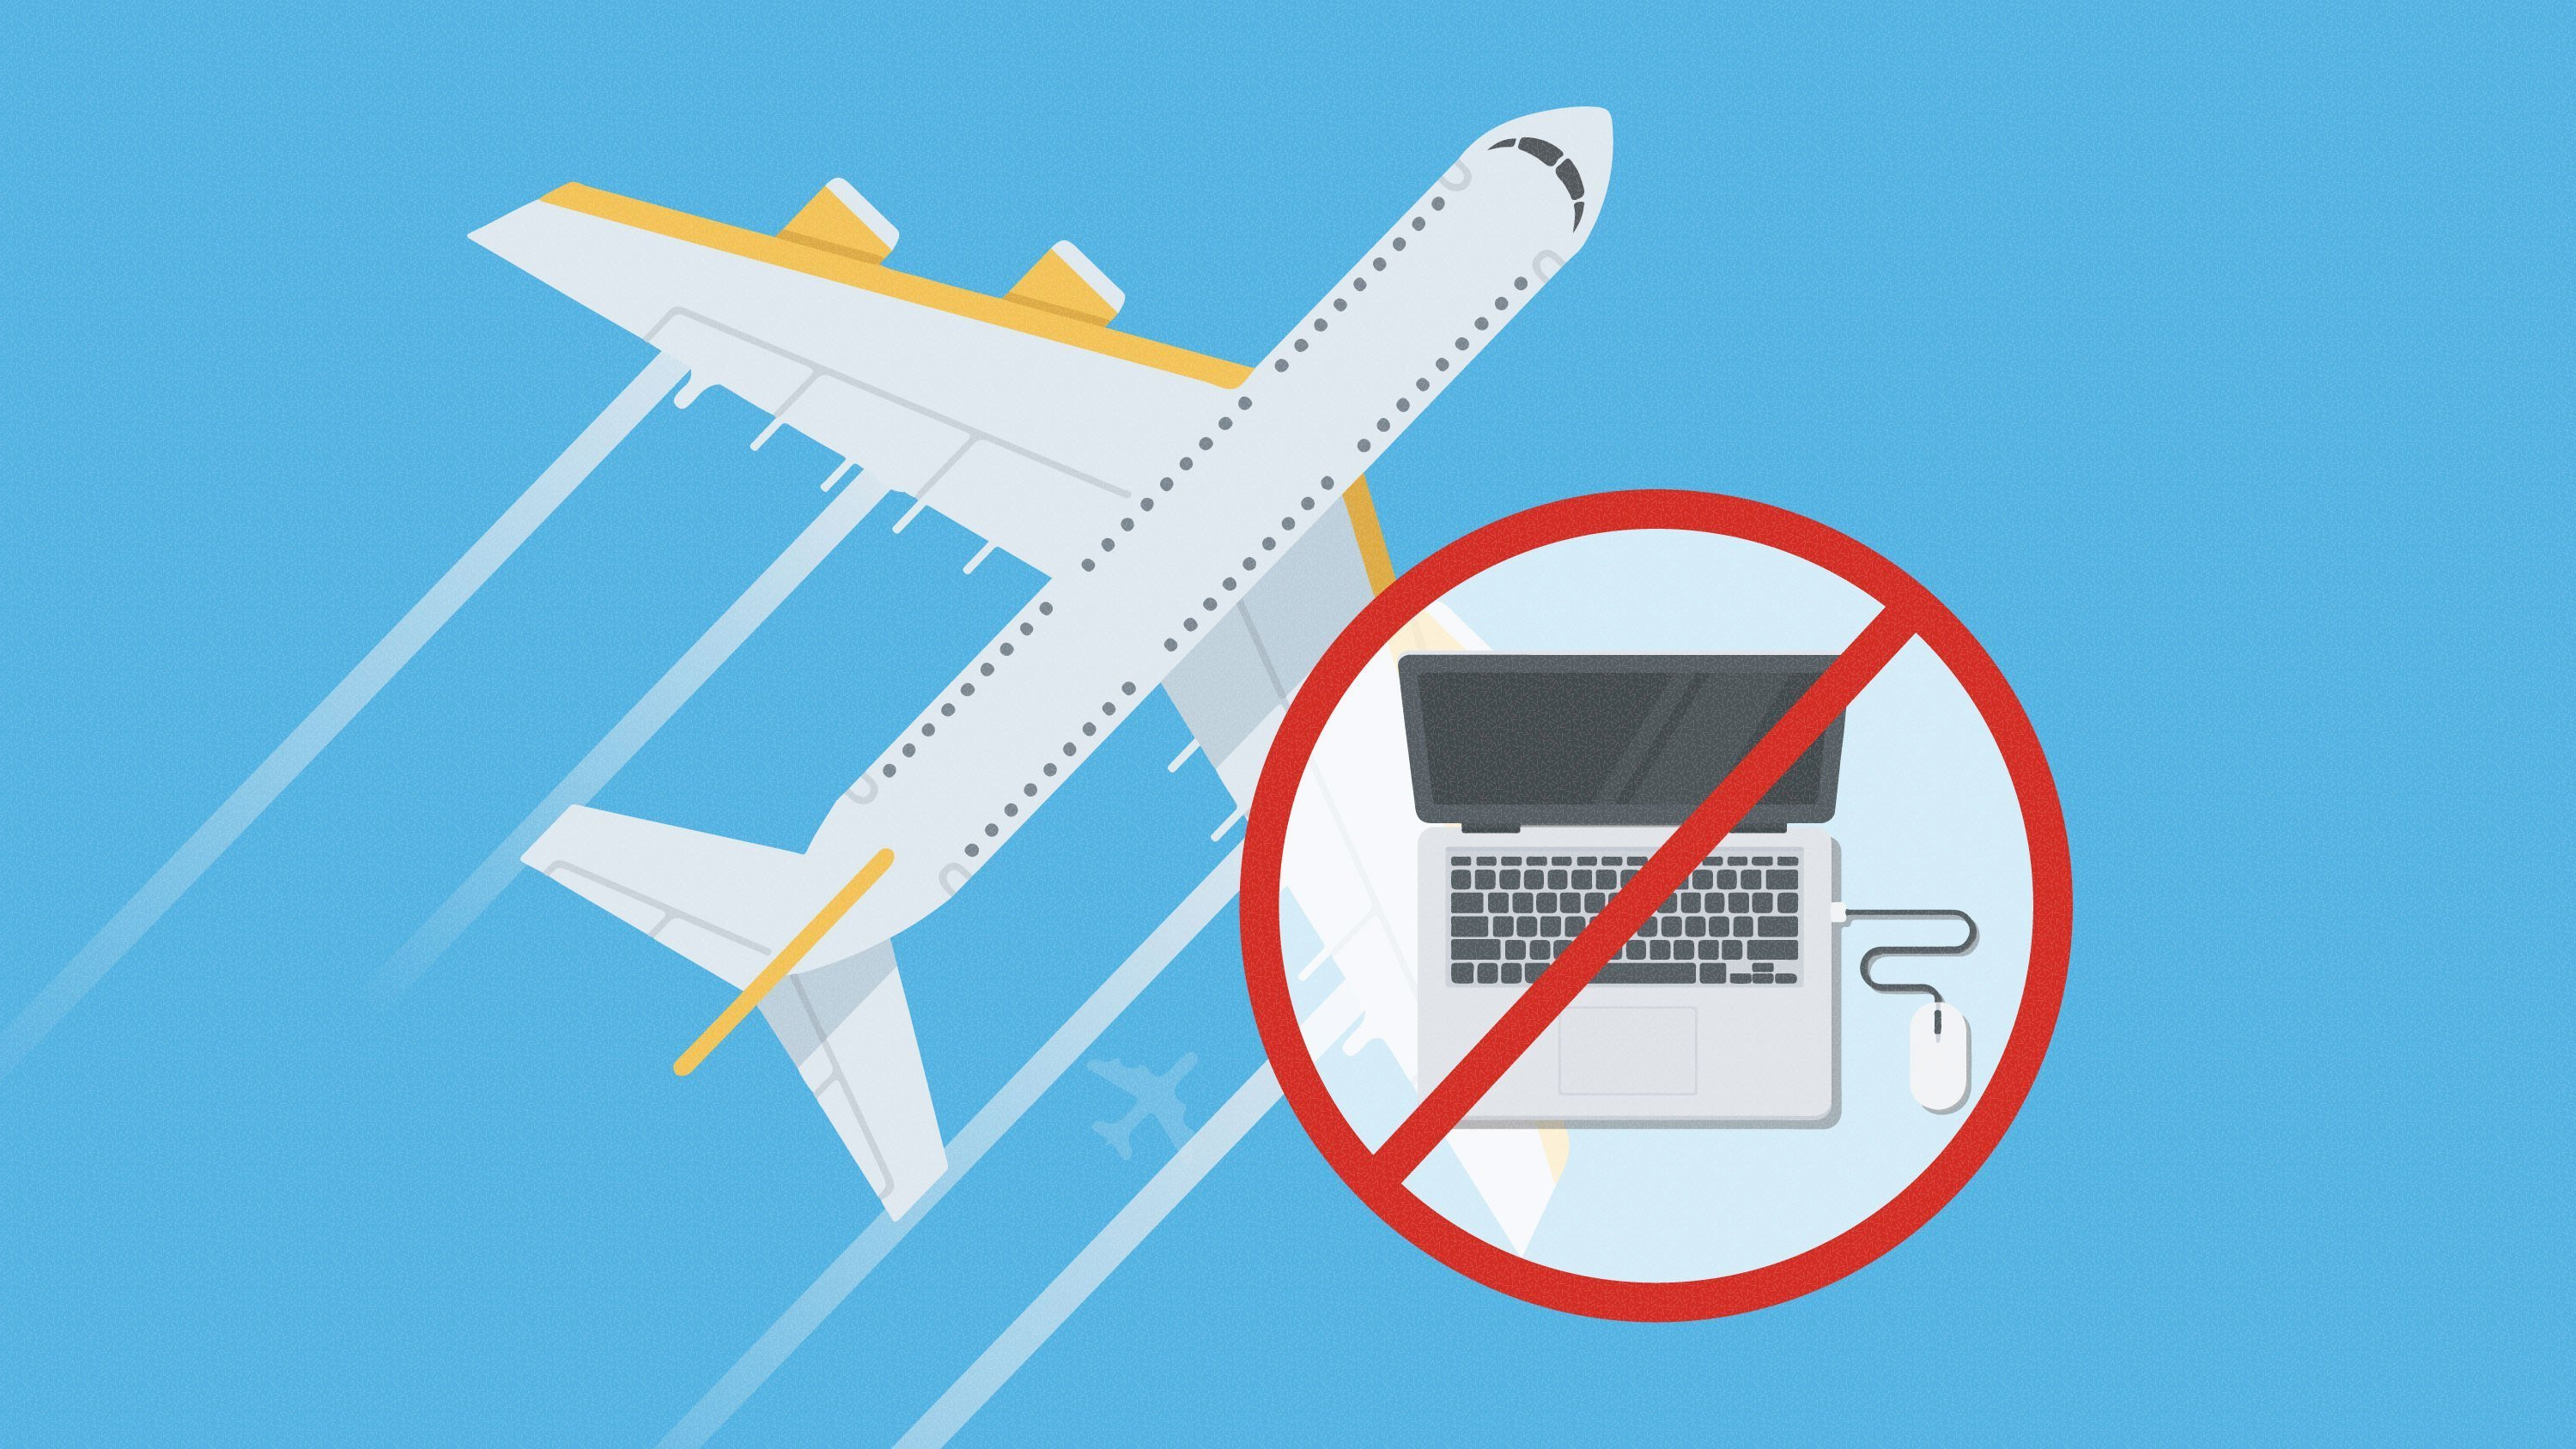 United States to ban some airline passengers from carrying larger electronics